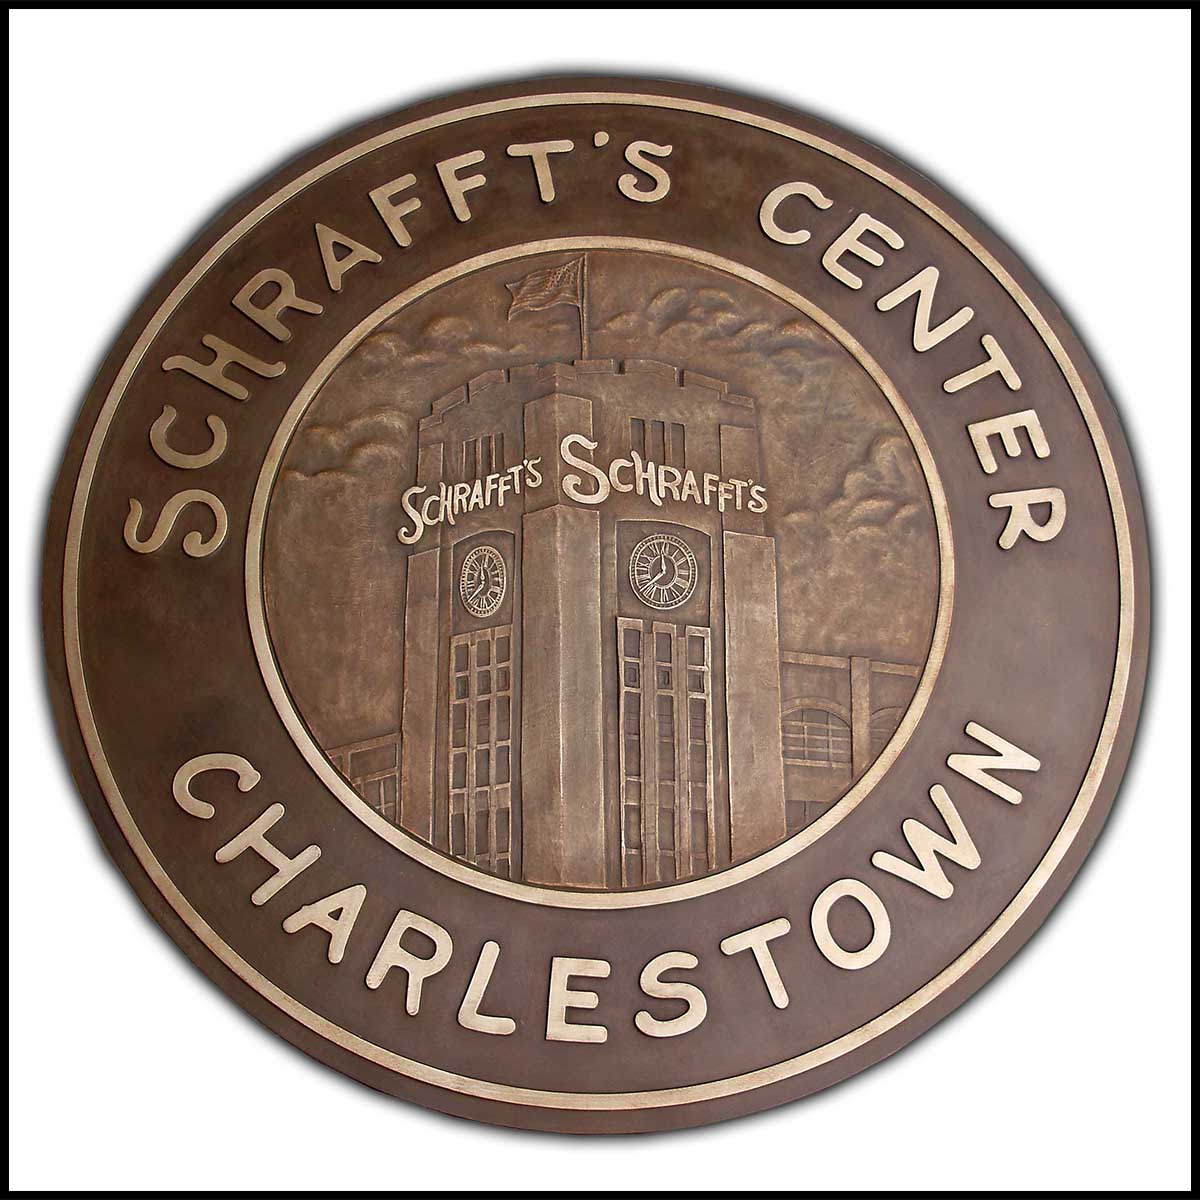 photo of bronze floor medallion with relief sculpture of Schrafft's building and text